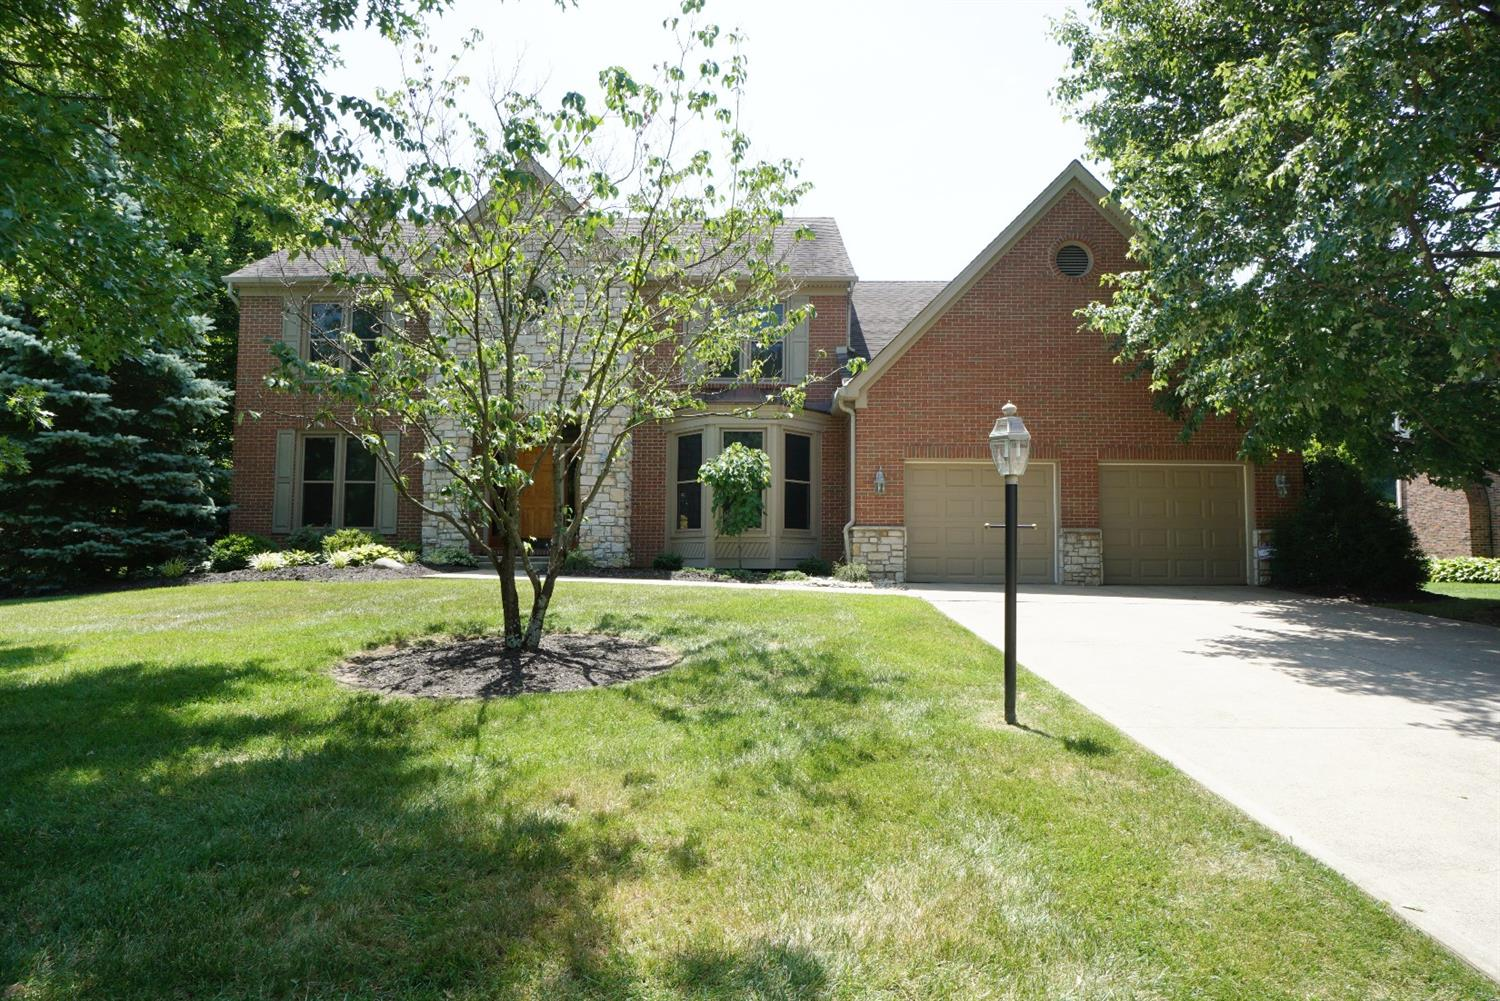 8127 Glenmill Ct Sycamore Twp., OH